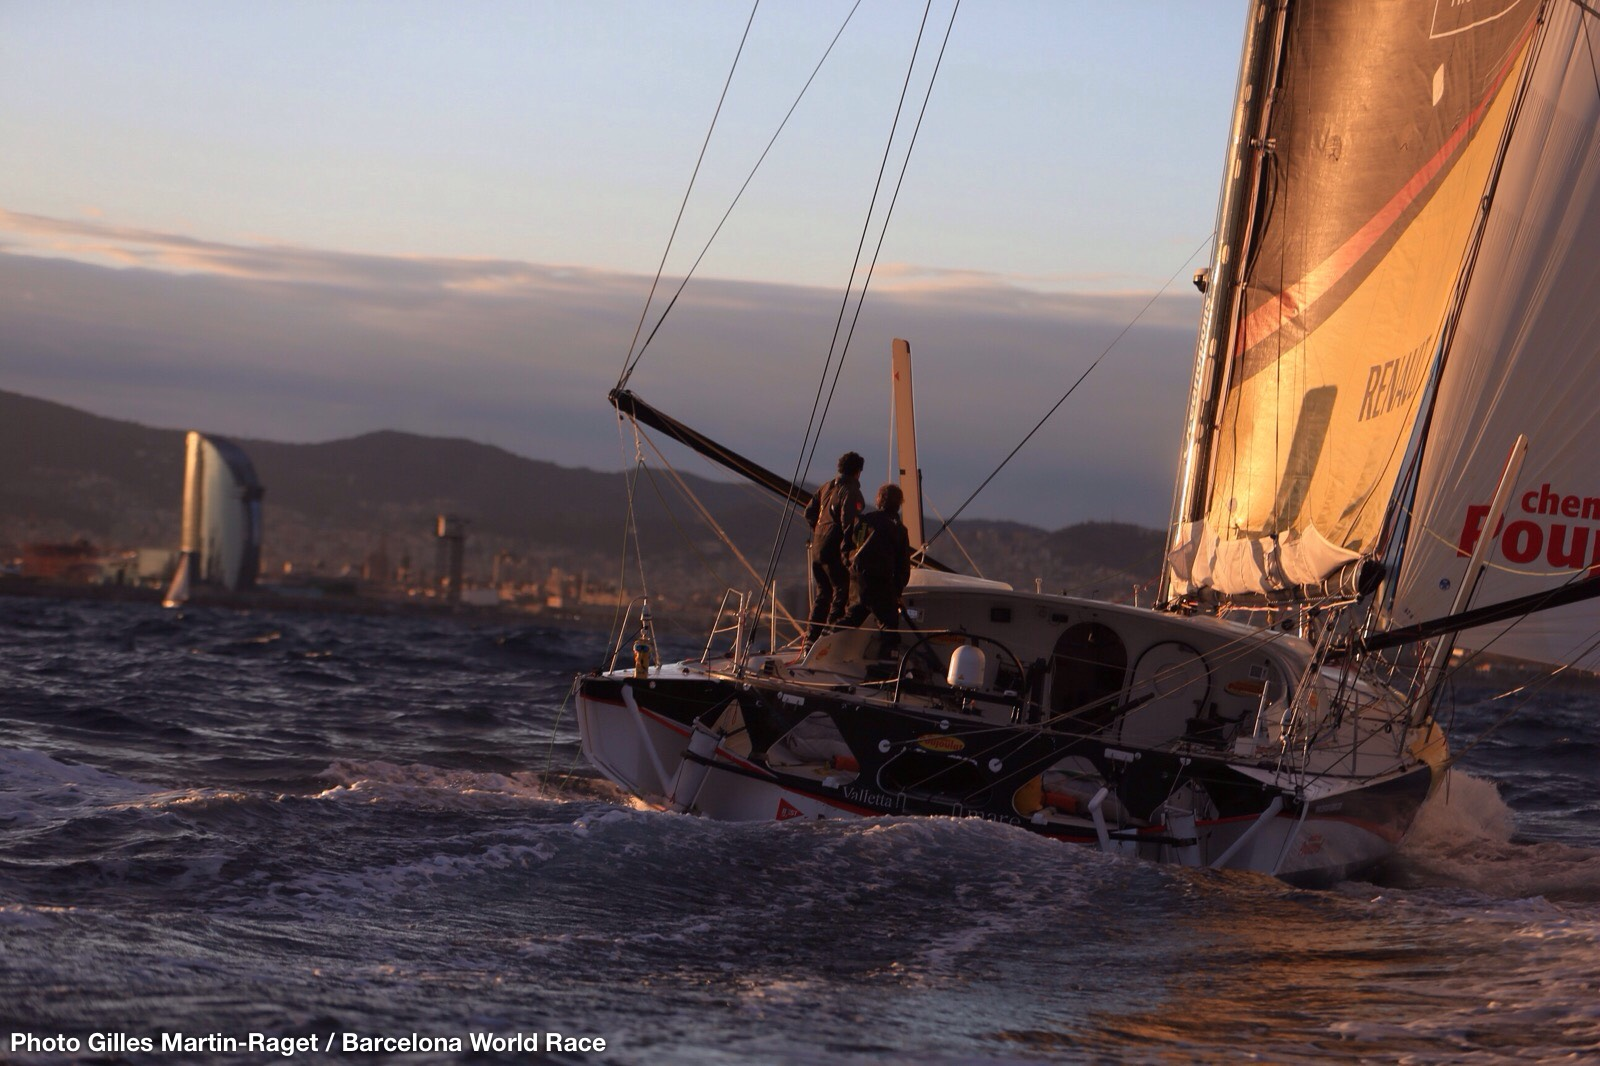 Bernard Stamm and Jean Le Cam are winners of the Barcelona World Race 2014-2015 on board Cheminées Poujoulat